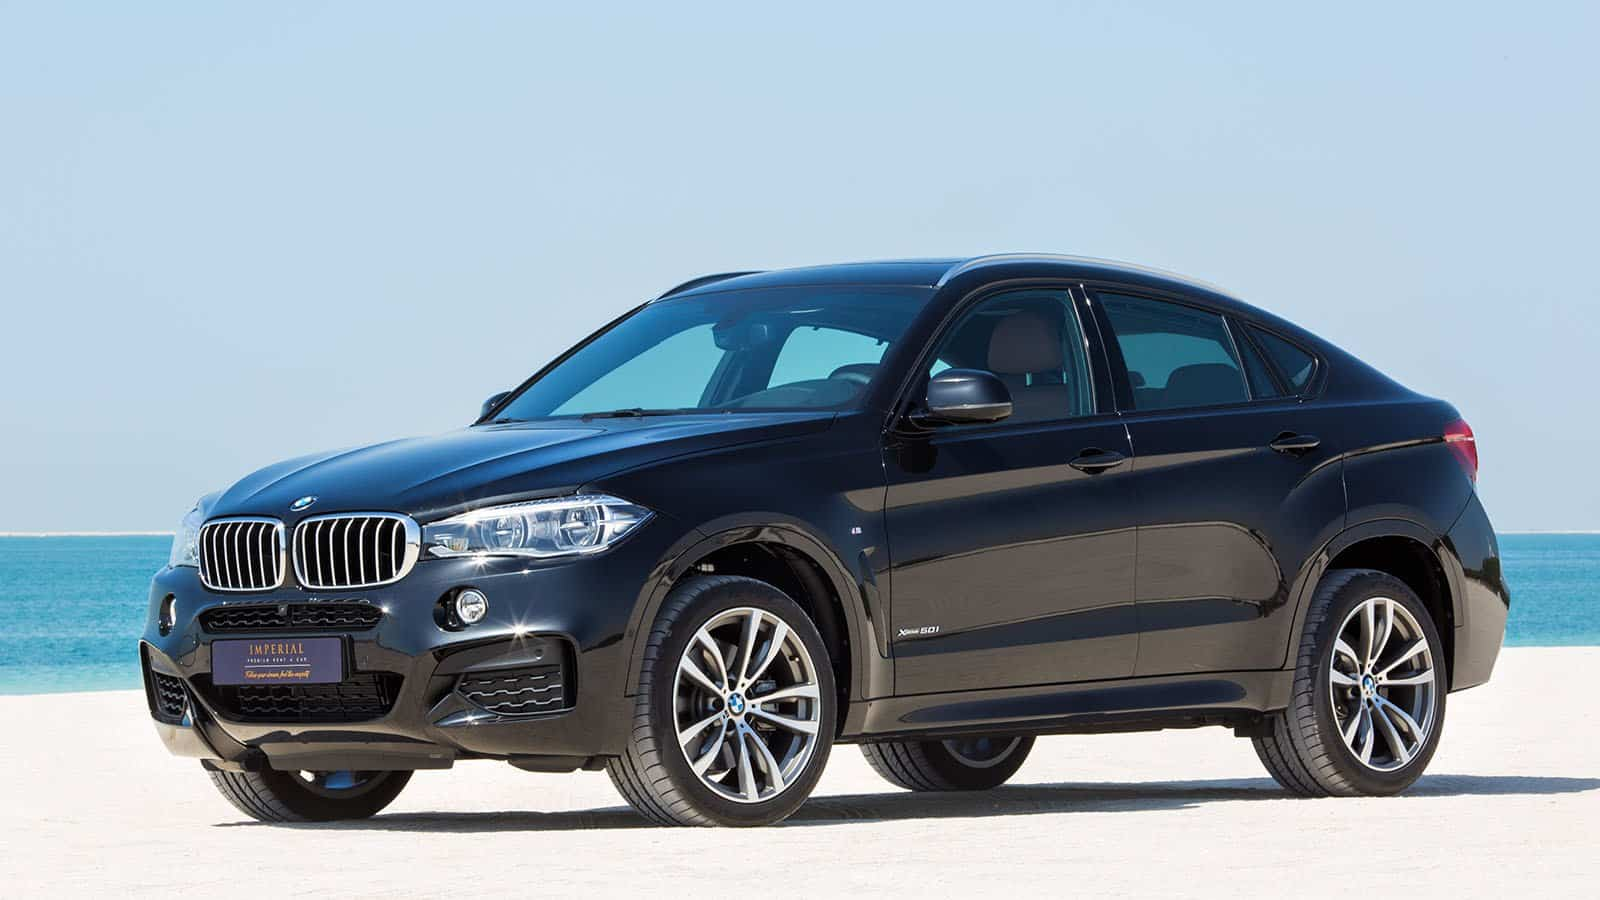 Bmw X6 M Reviews Bmw X6 M Price Photos Car And Driver